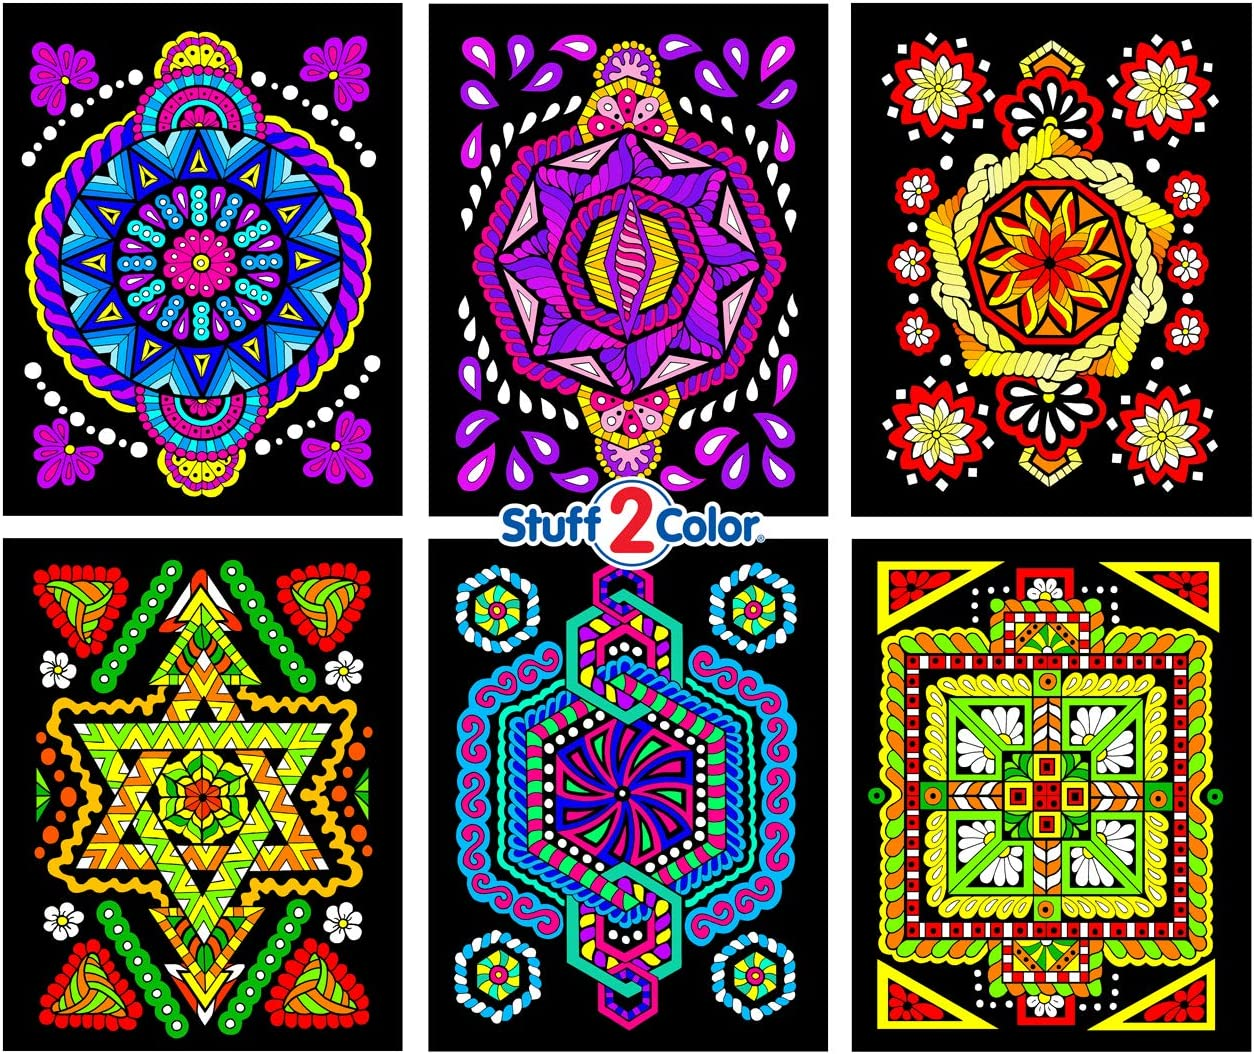 6-Pack of 8x10 Velvet Posters Triangle Octagon Square Circle Pentagon Hexagon